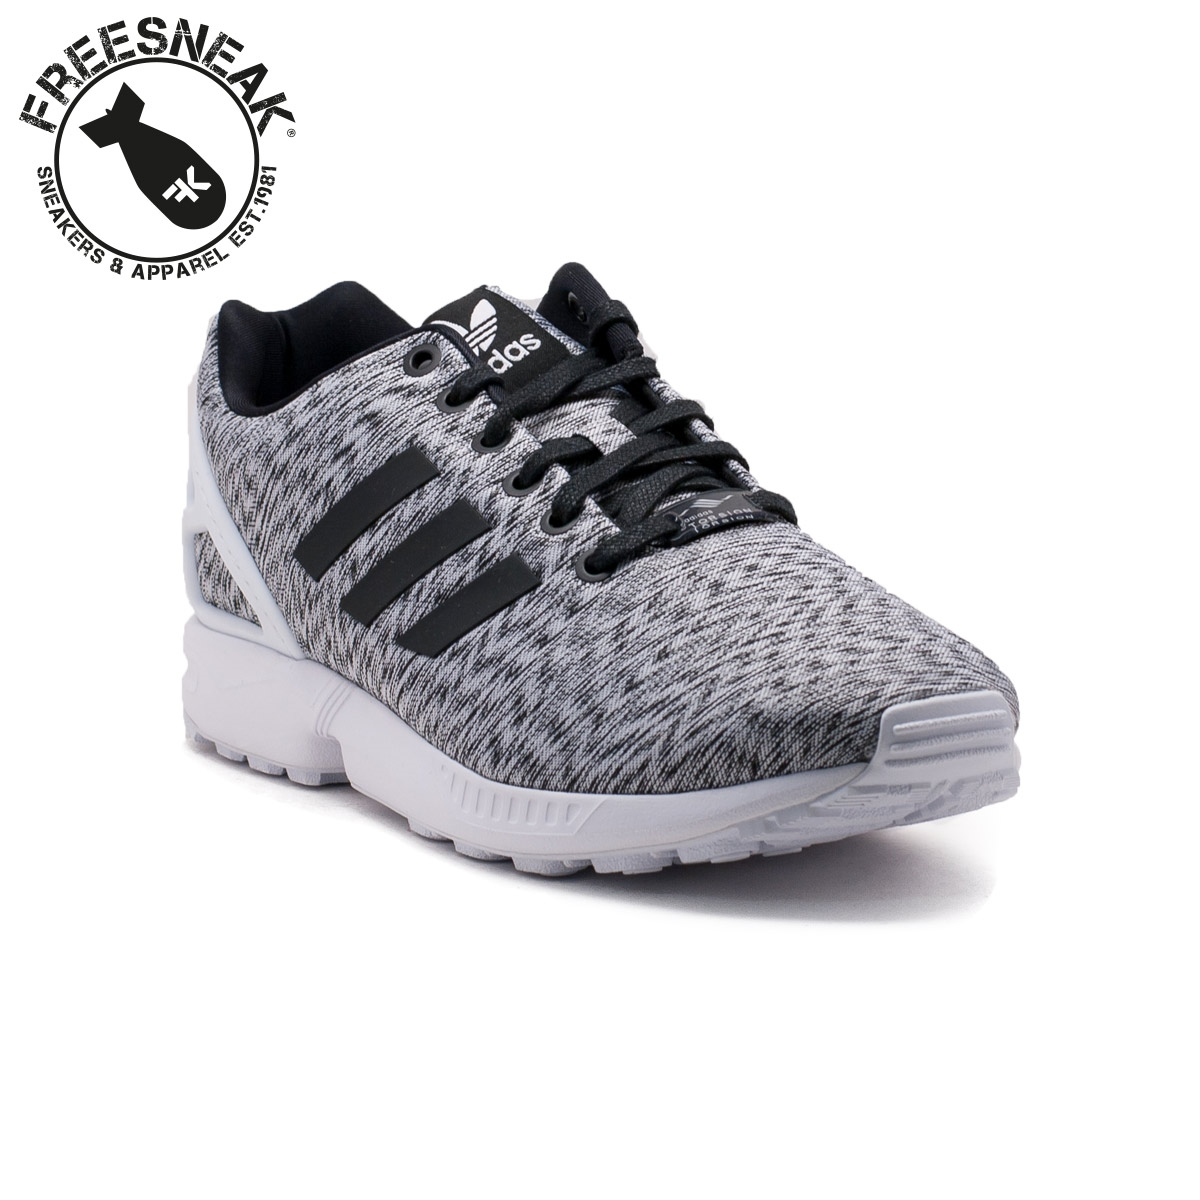 reputable site 3603e 74794 adidas zx flu grigio